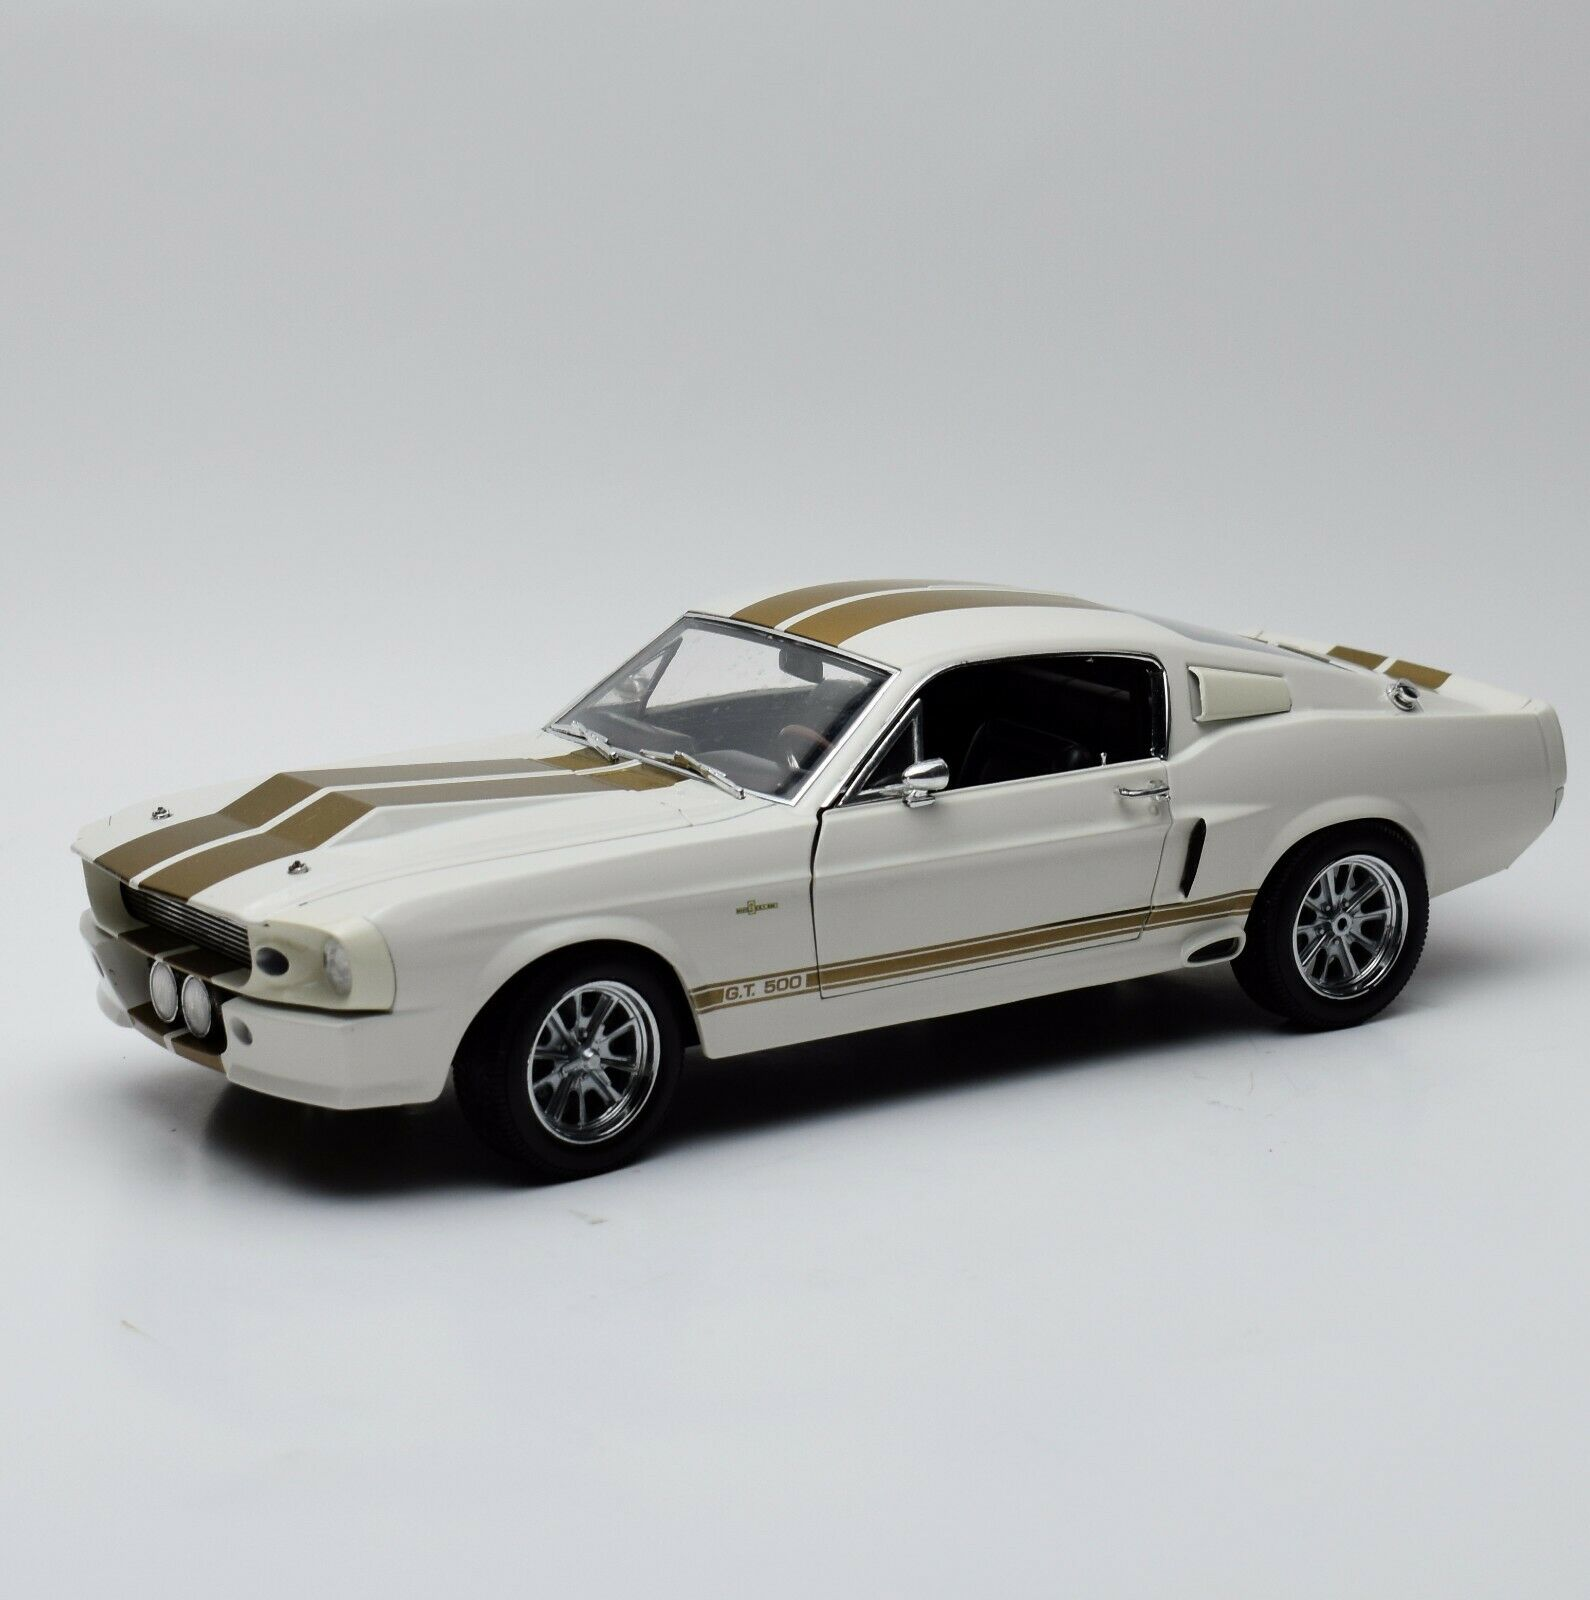 Shelby Collectibles Shelby G.T. 500 Sport Coupe anno 1967 in bianco, 1:18, v002